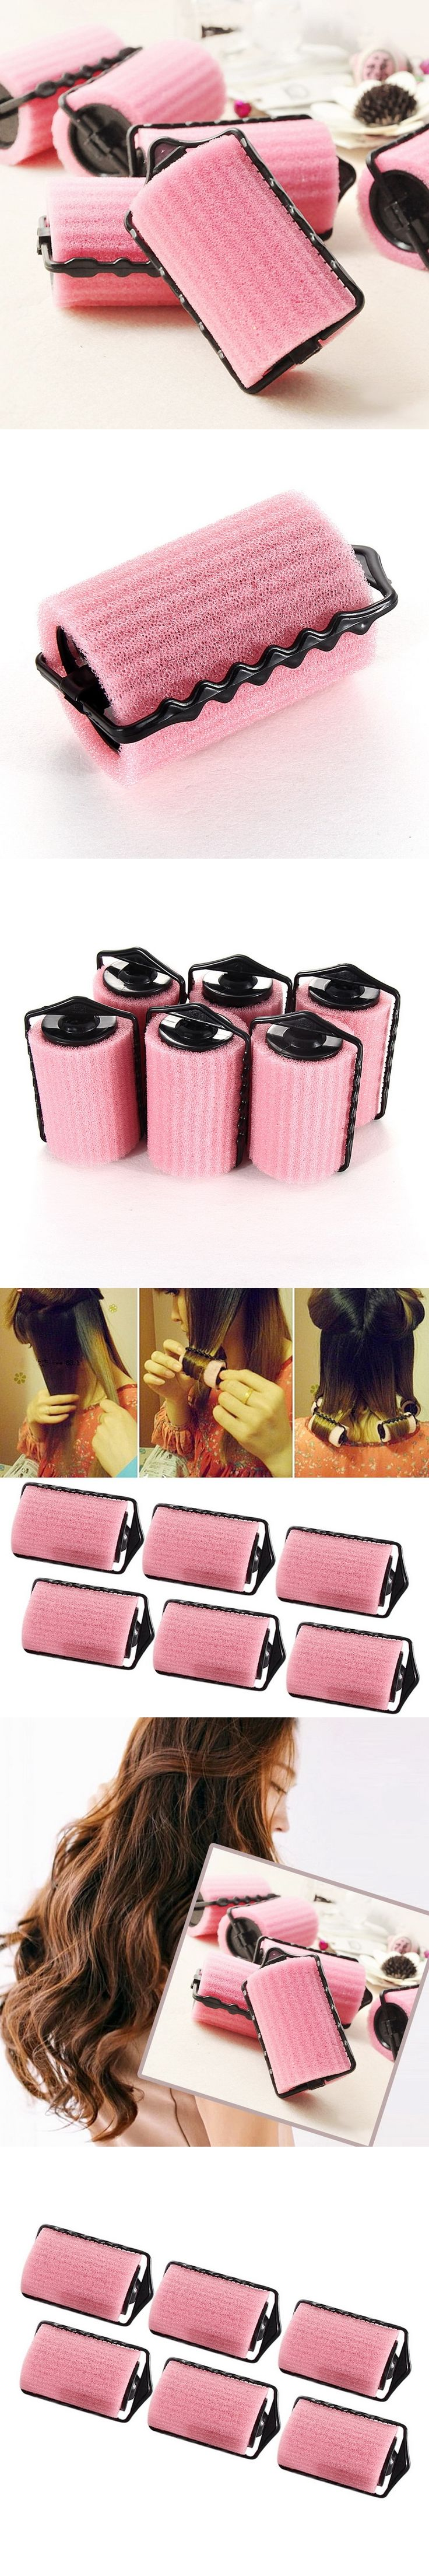 6pcs/set Magic Sponge Roller Curl Flexible Foam Hair Rollers DIY Hair Styling Curlers Hairstyle Rollers Hairing Curling Tools